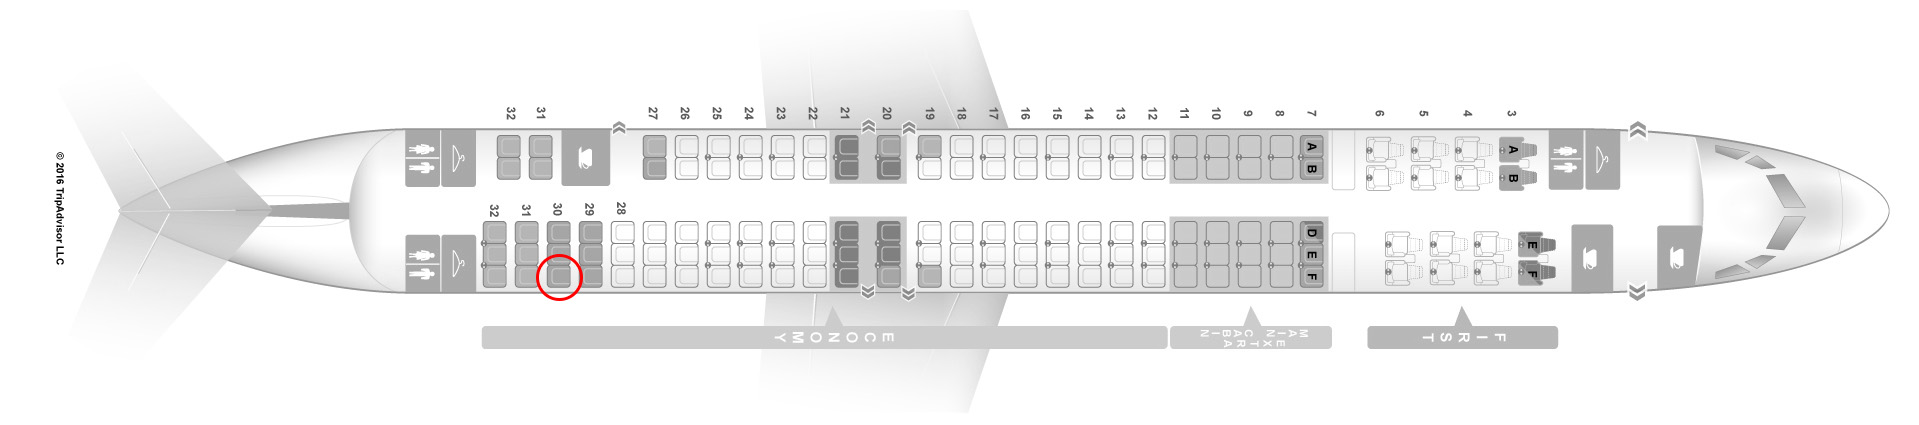 MD-83 seat map american airlines